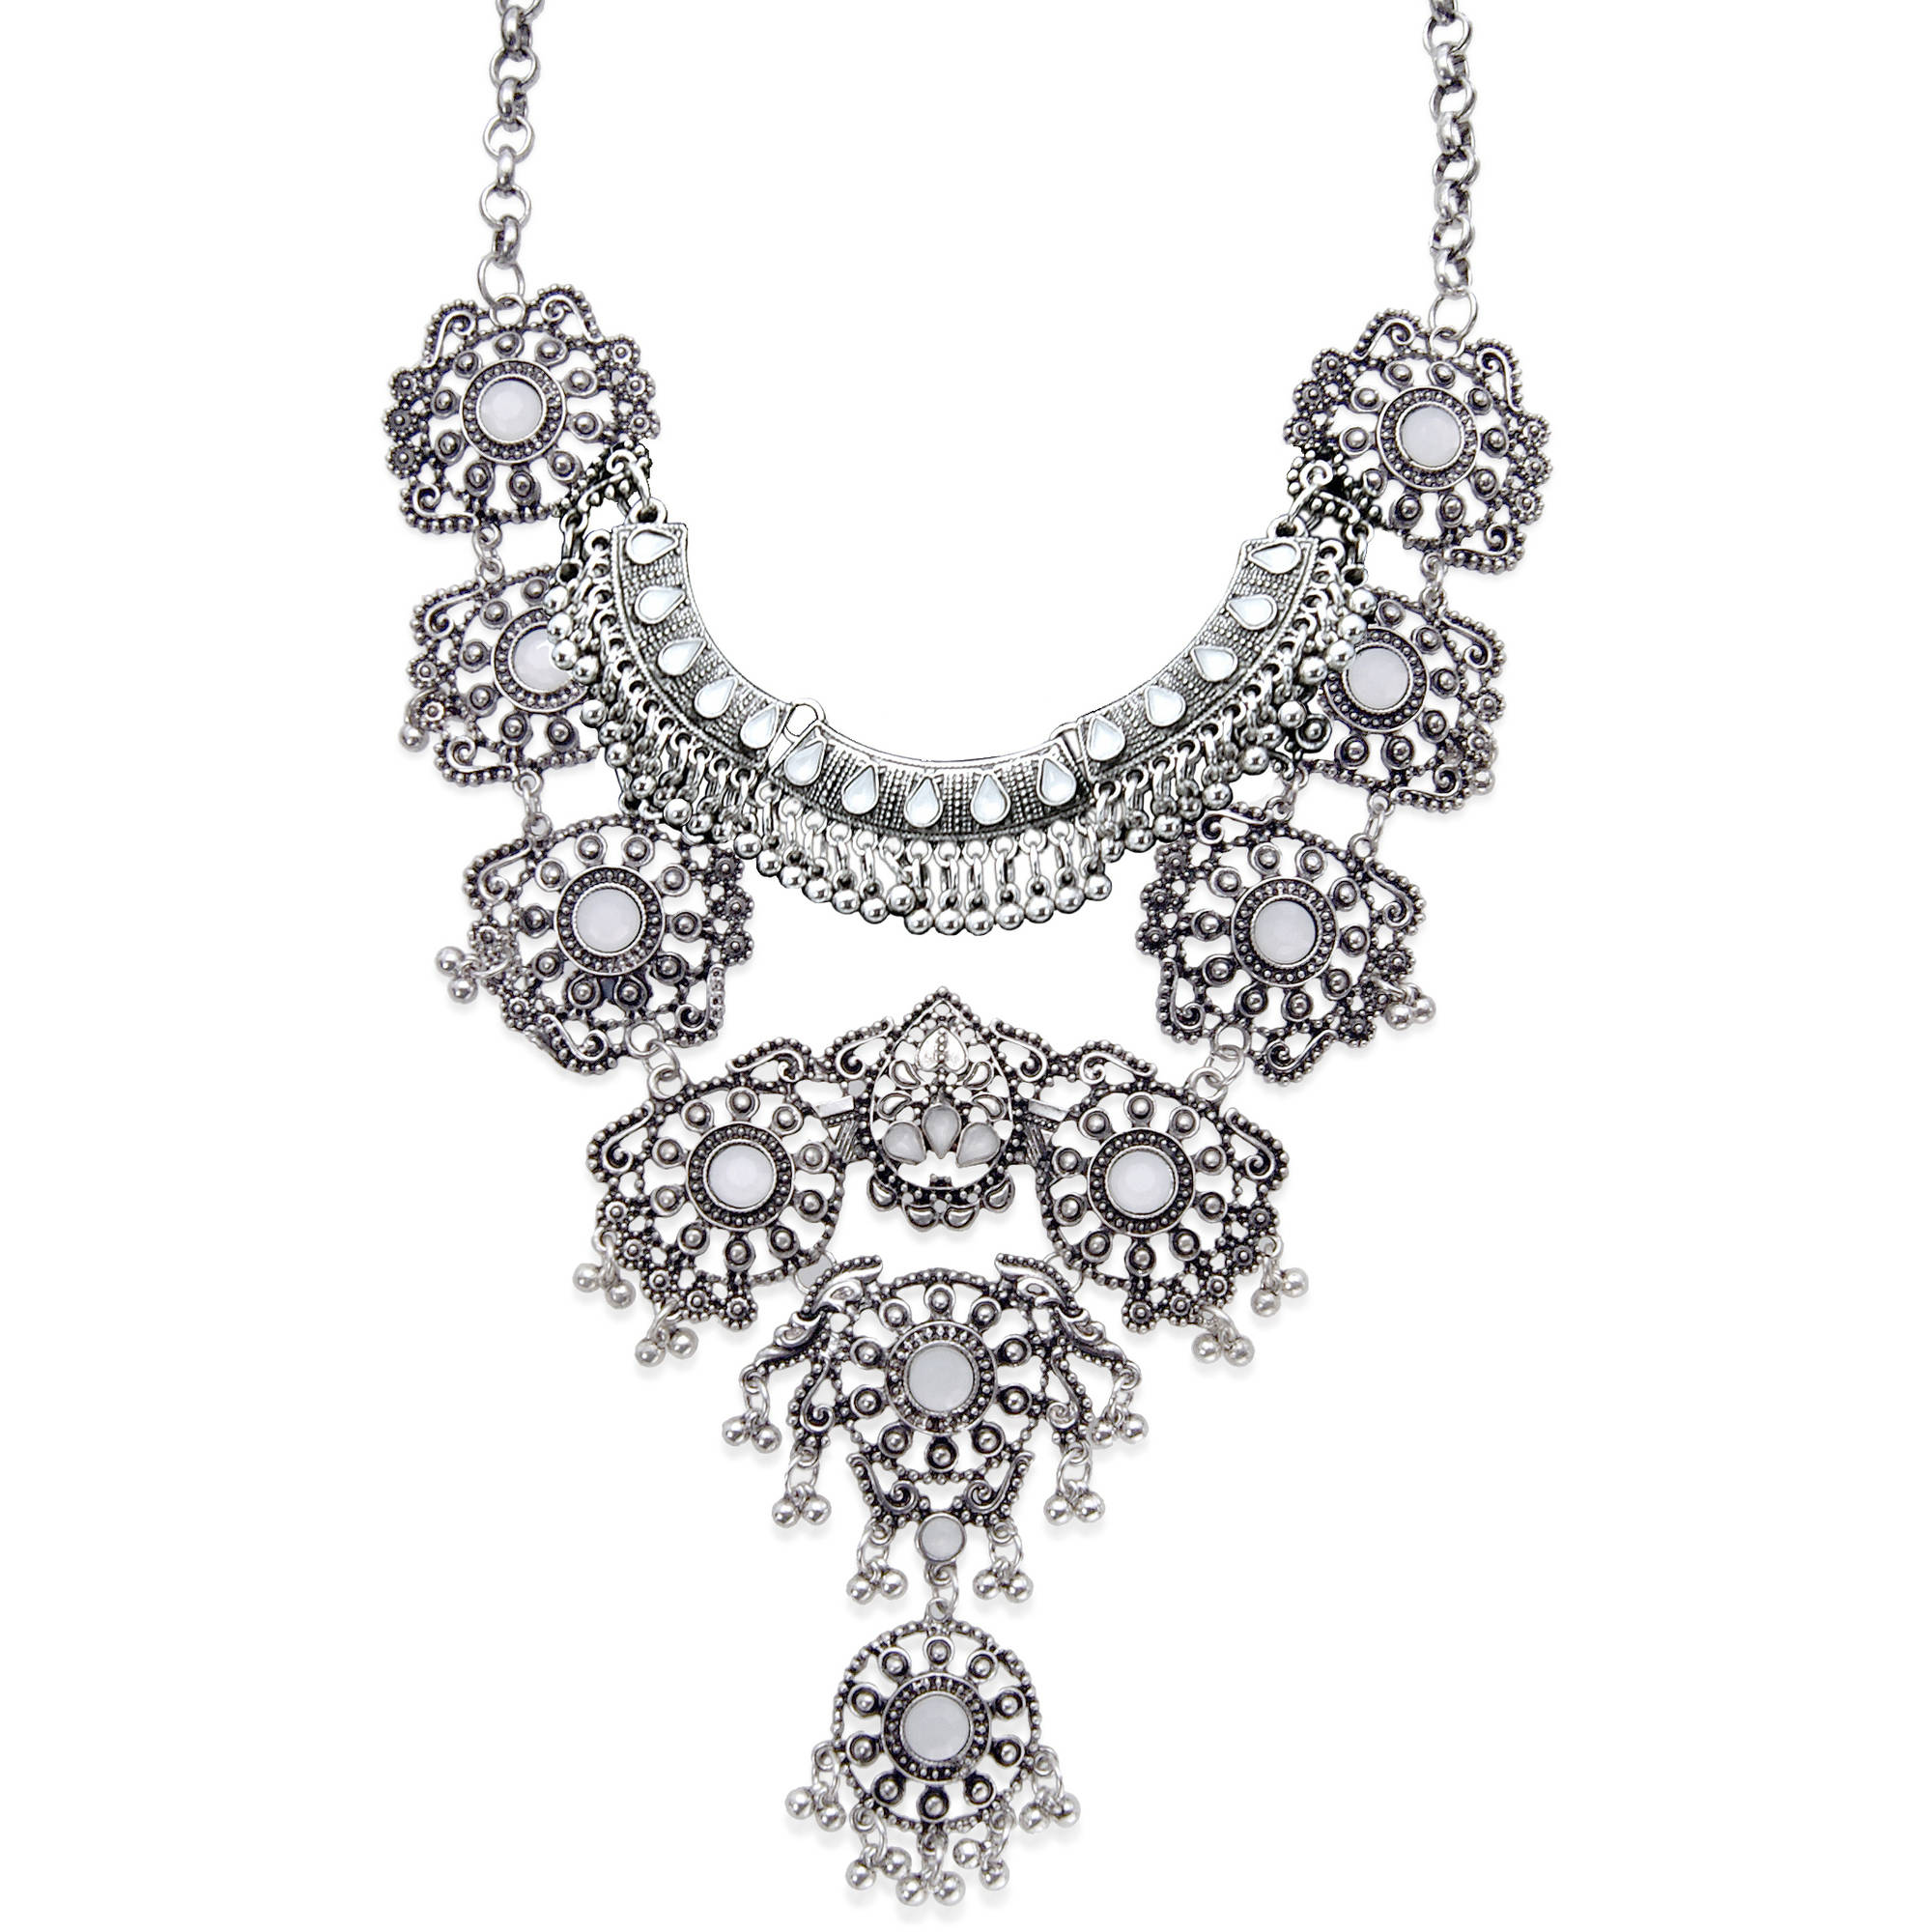 Baroque Statement Necklace with Silver Oxide Detailing, Adjustable